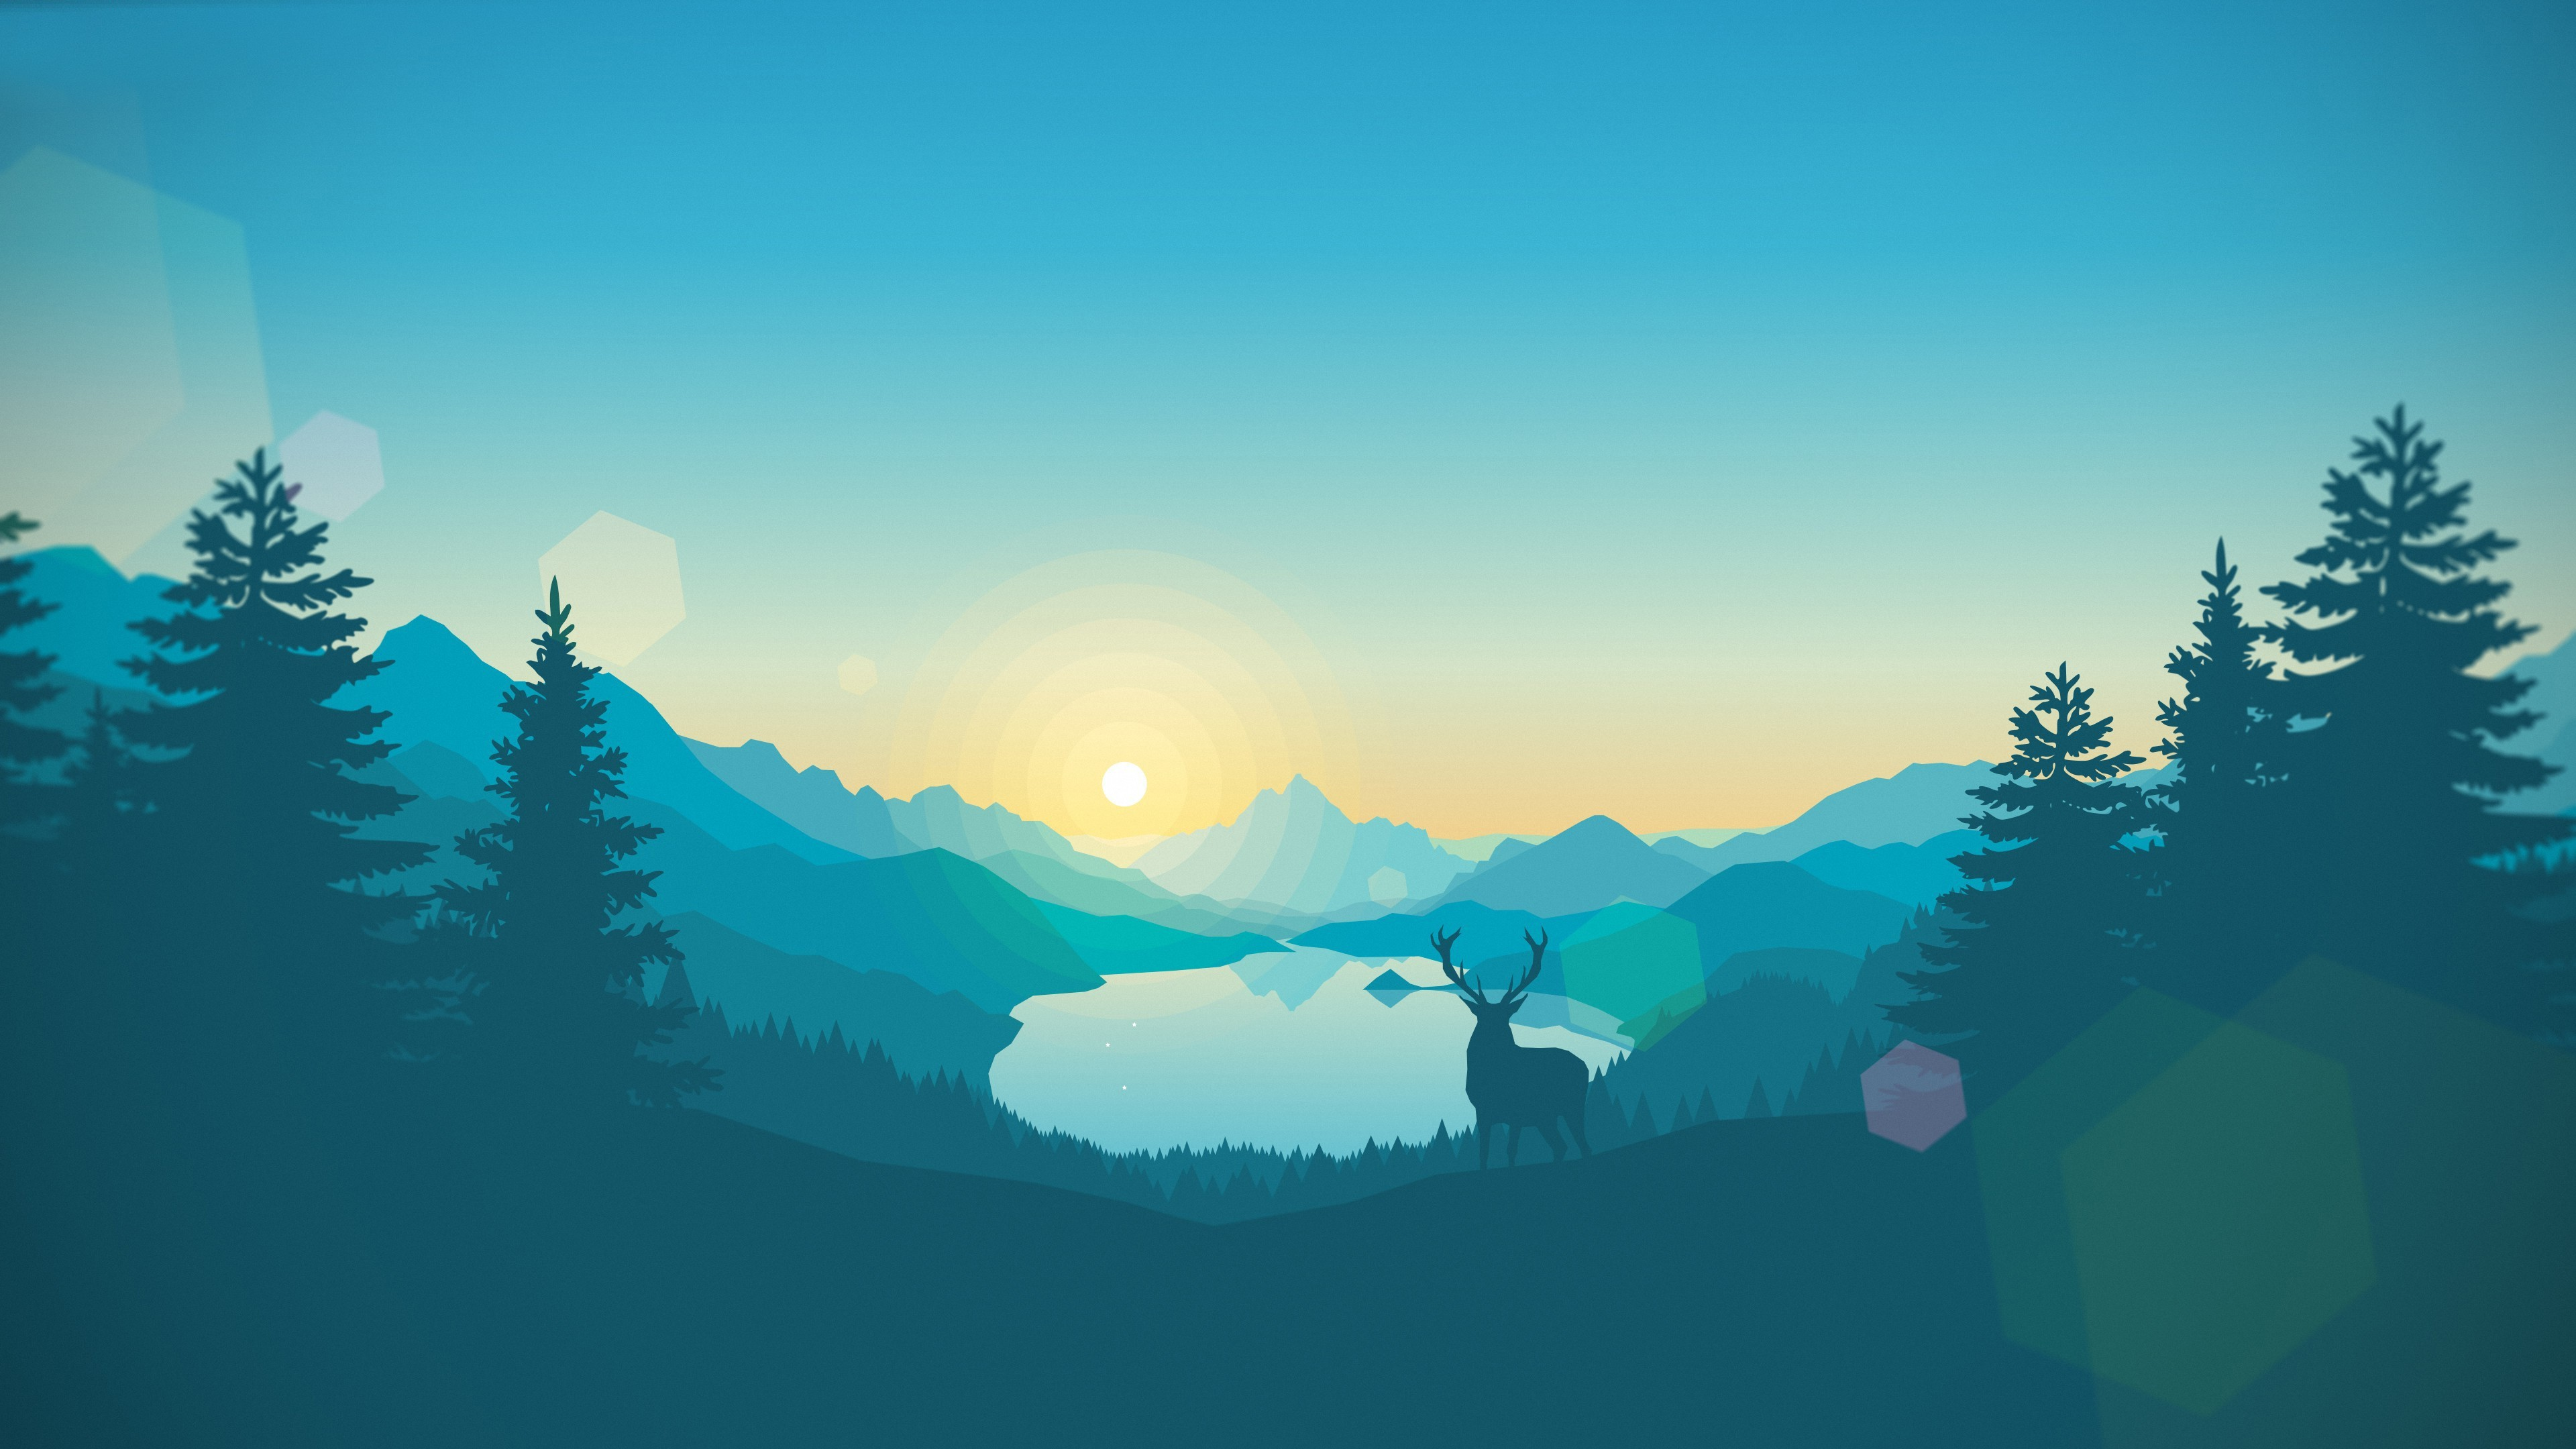 Firewatch 4k widescreen wallpaper 406